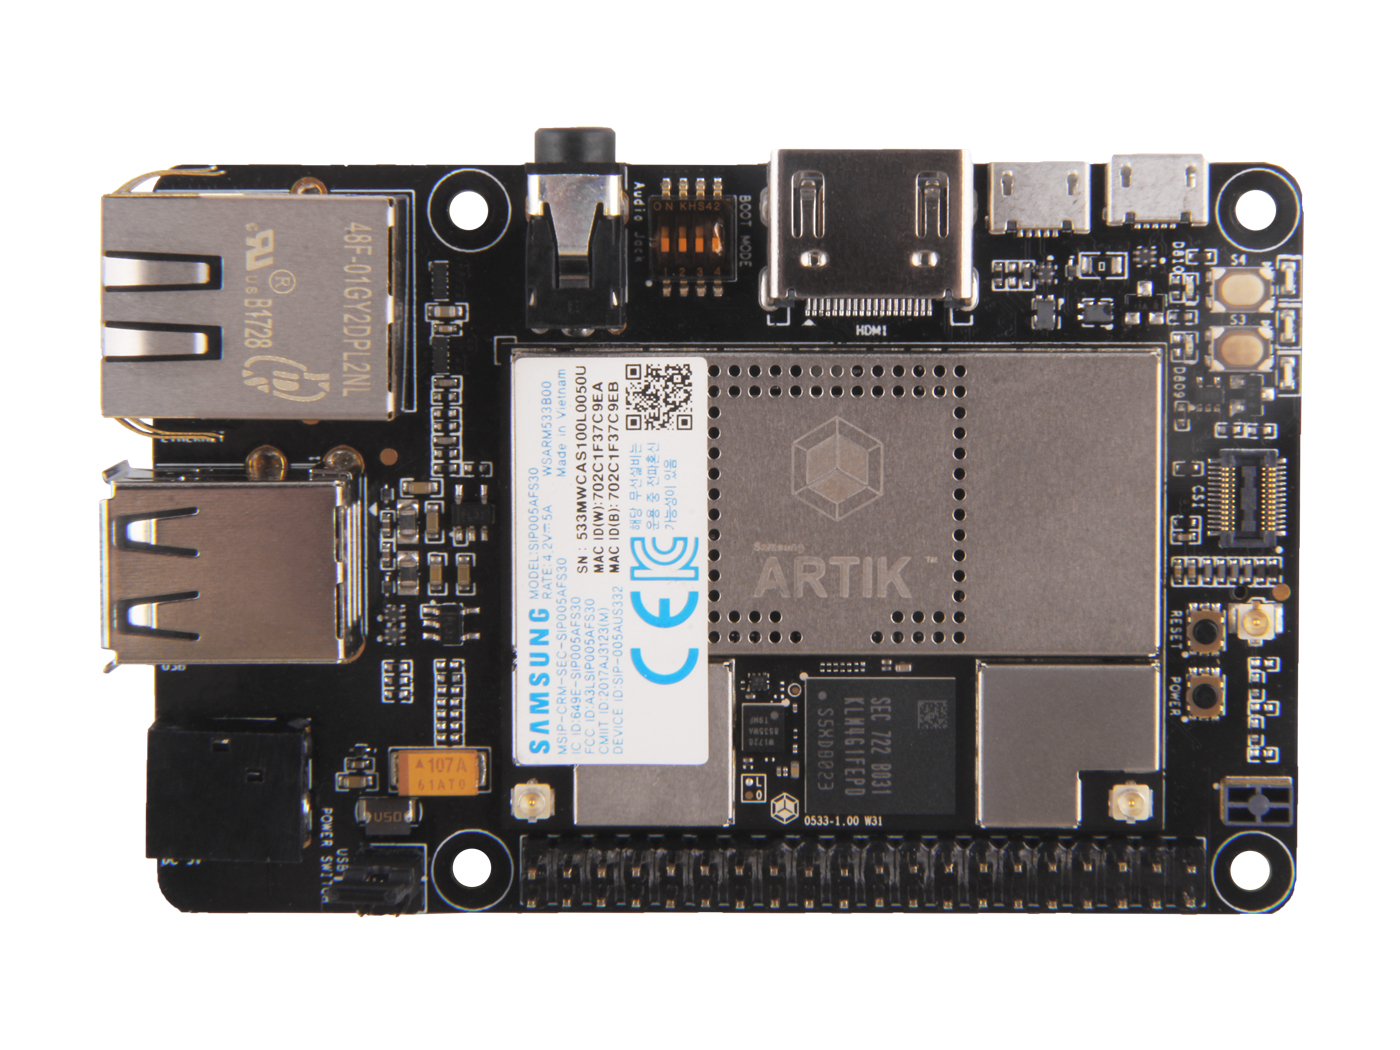 Eagleye 530s Artik Seeed Studio Have The New Power Lines Soldered To Gps Circuit Board When I